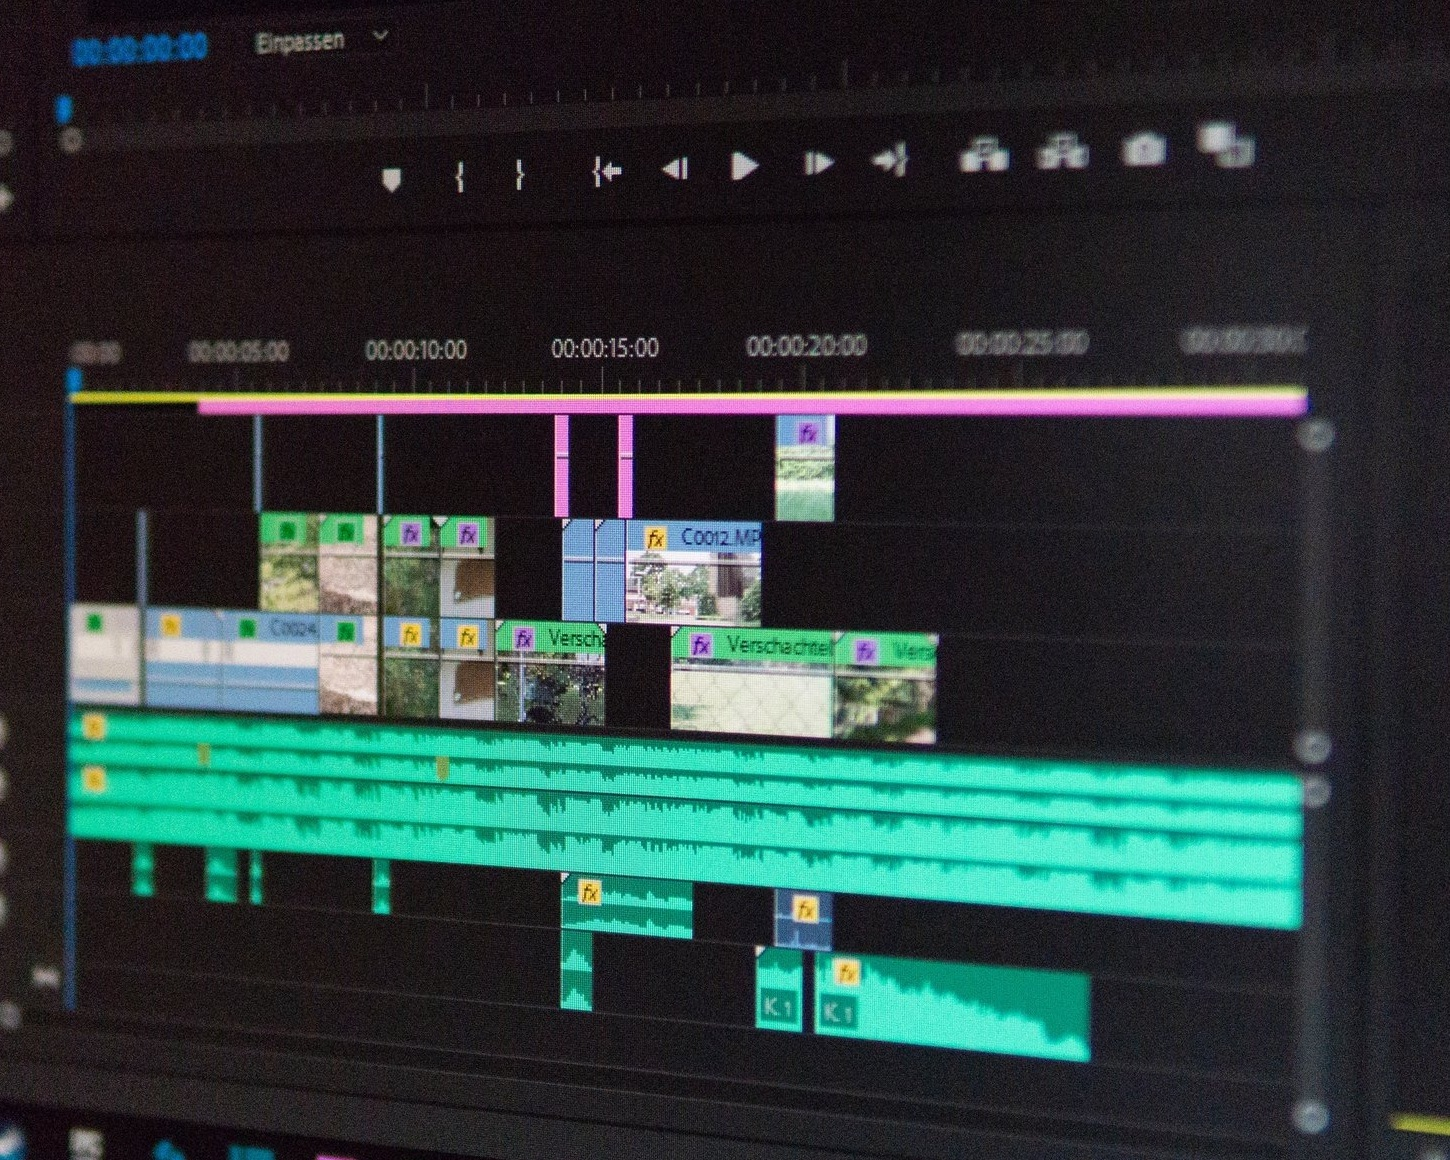 Editing - It should go without saying that we have some ability when it comes to editing. So whether you have an old SD card filled with holiday footage that's waiting to be turned into an EPIC TRIP VIDEO or you're looking for some final polish on your latest masterpiece we're here to cater to your needs.